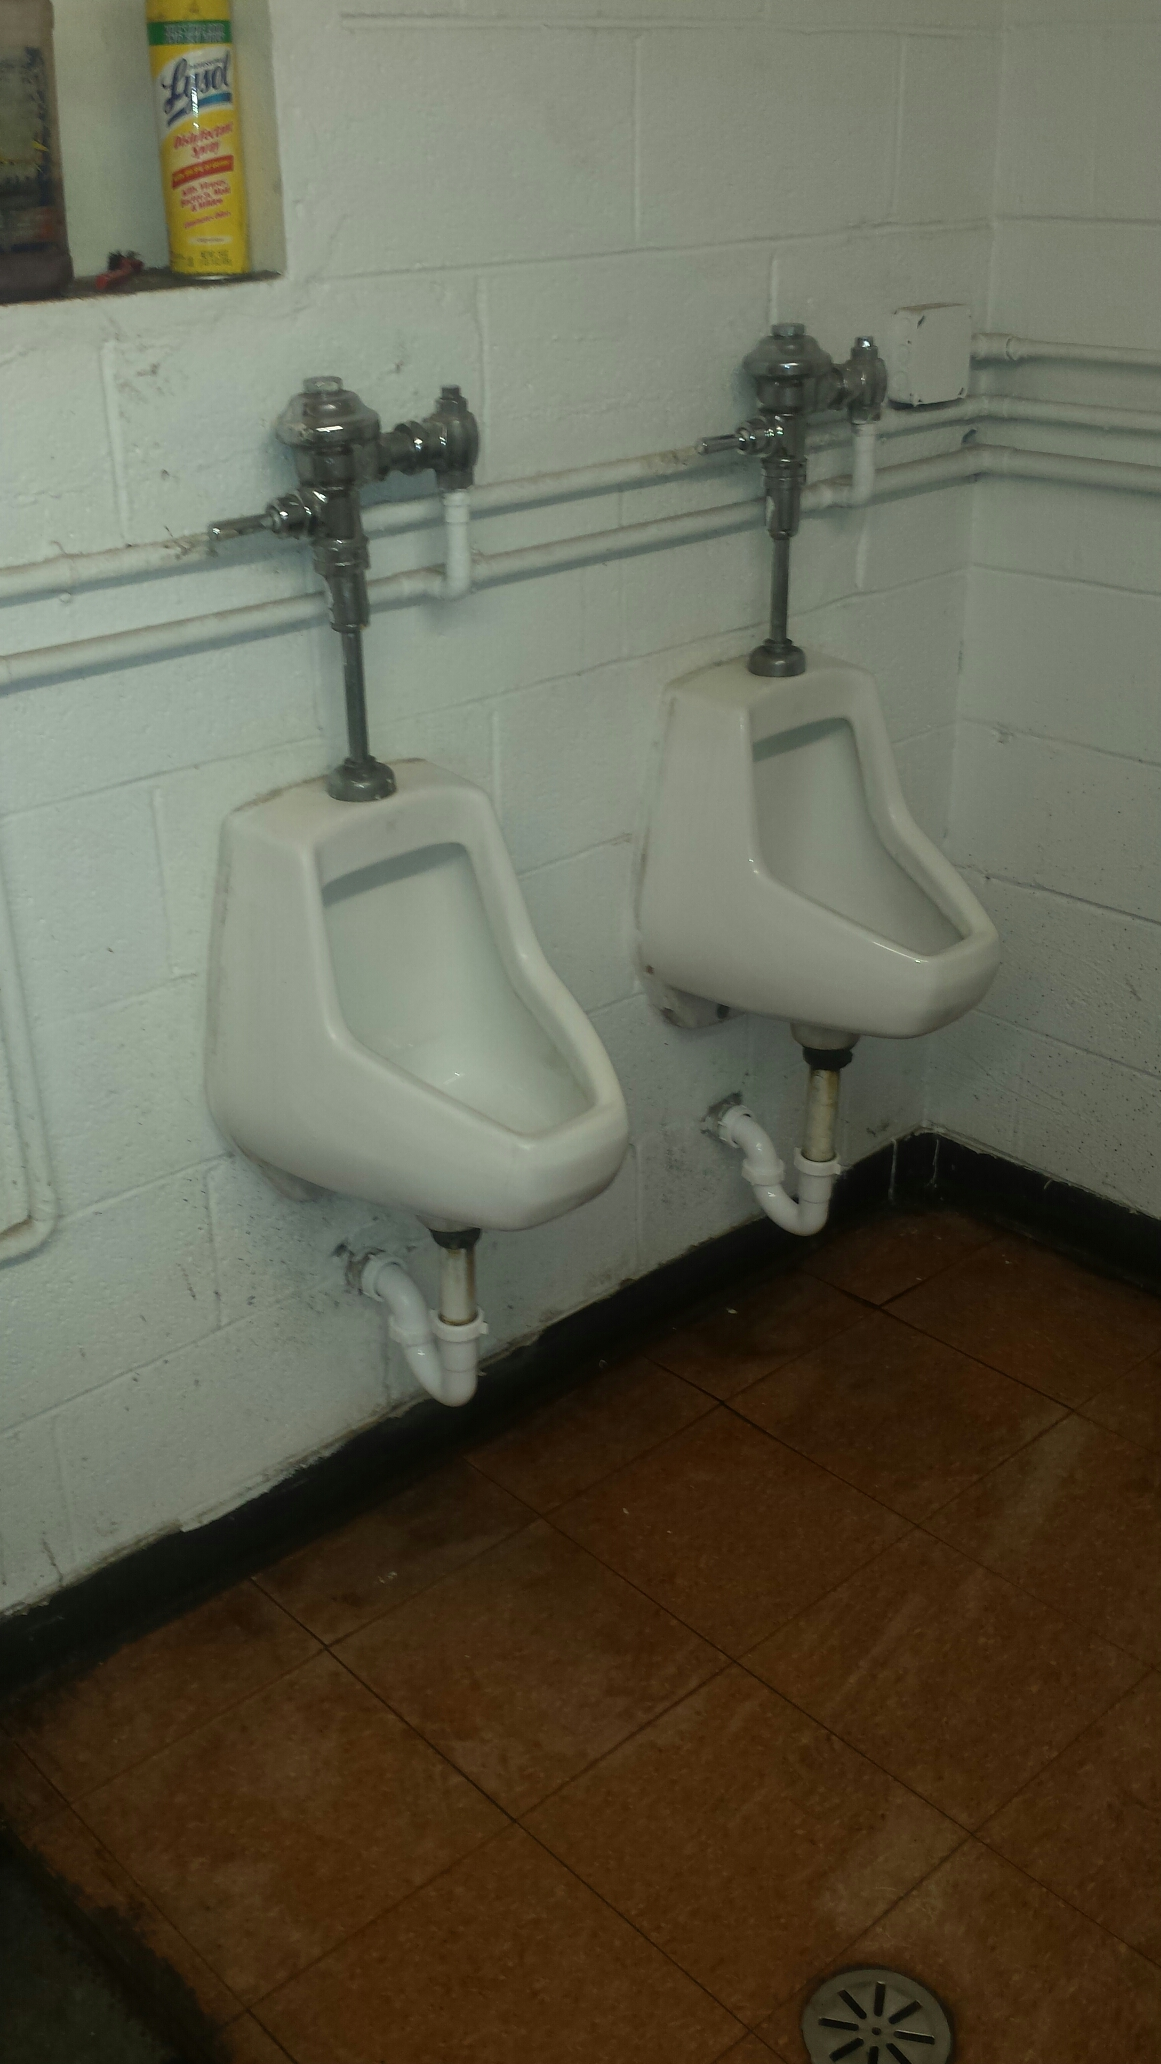 Melvindale, MI - Snaked urinal drains in commercial building